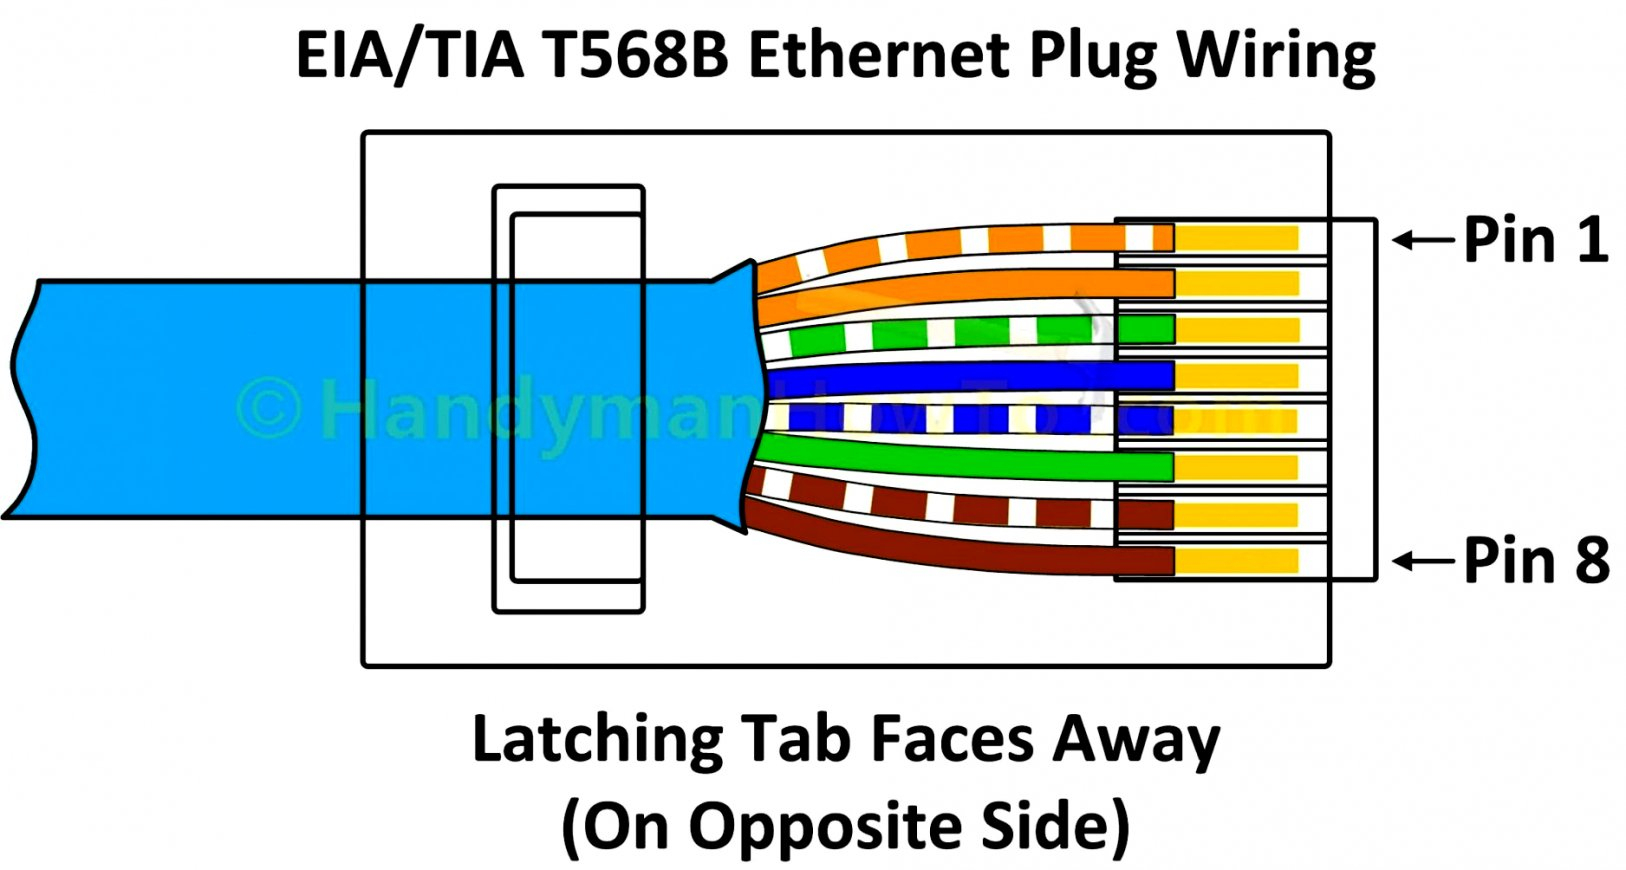 Cat5E Wiring Diagram Wall Plate | Wiring Diagram - Cat5E Wiring Diagram Wall Plate